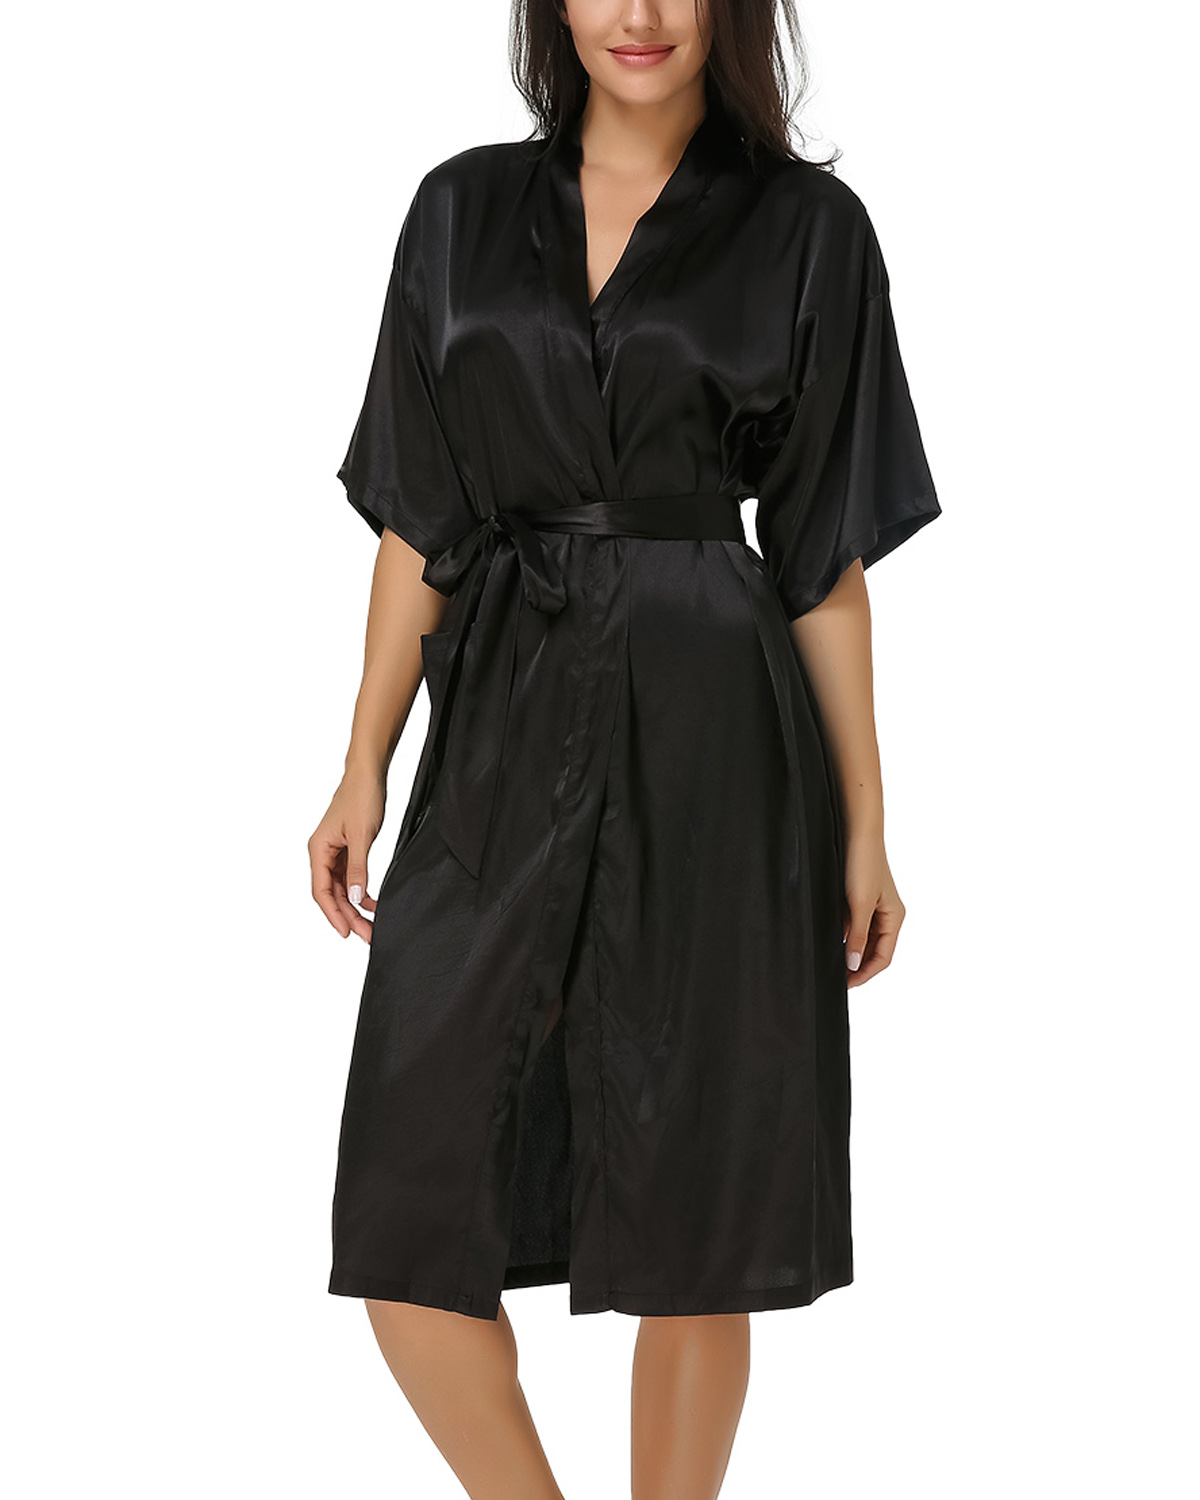 2019 Women Solid Silk Sleepshirts Summer Casual Loose Sexy V-Neck Half Sleeve Mid-Calf Pockets Nightgowns Plus Size Belt Lounge